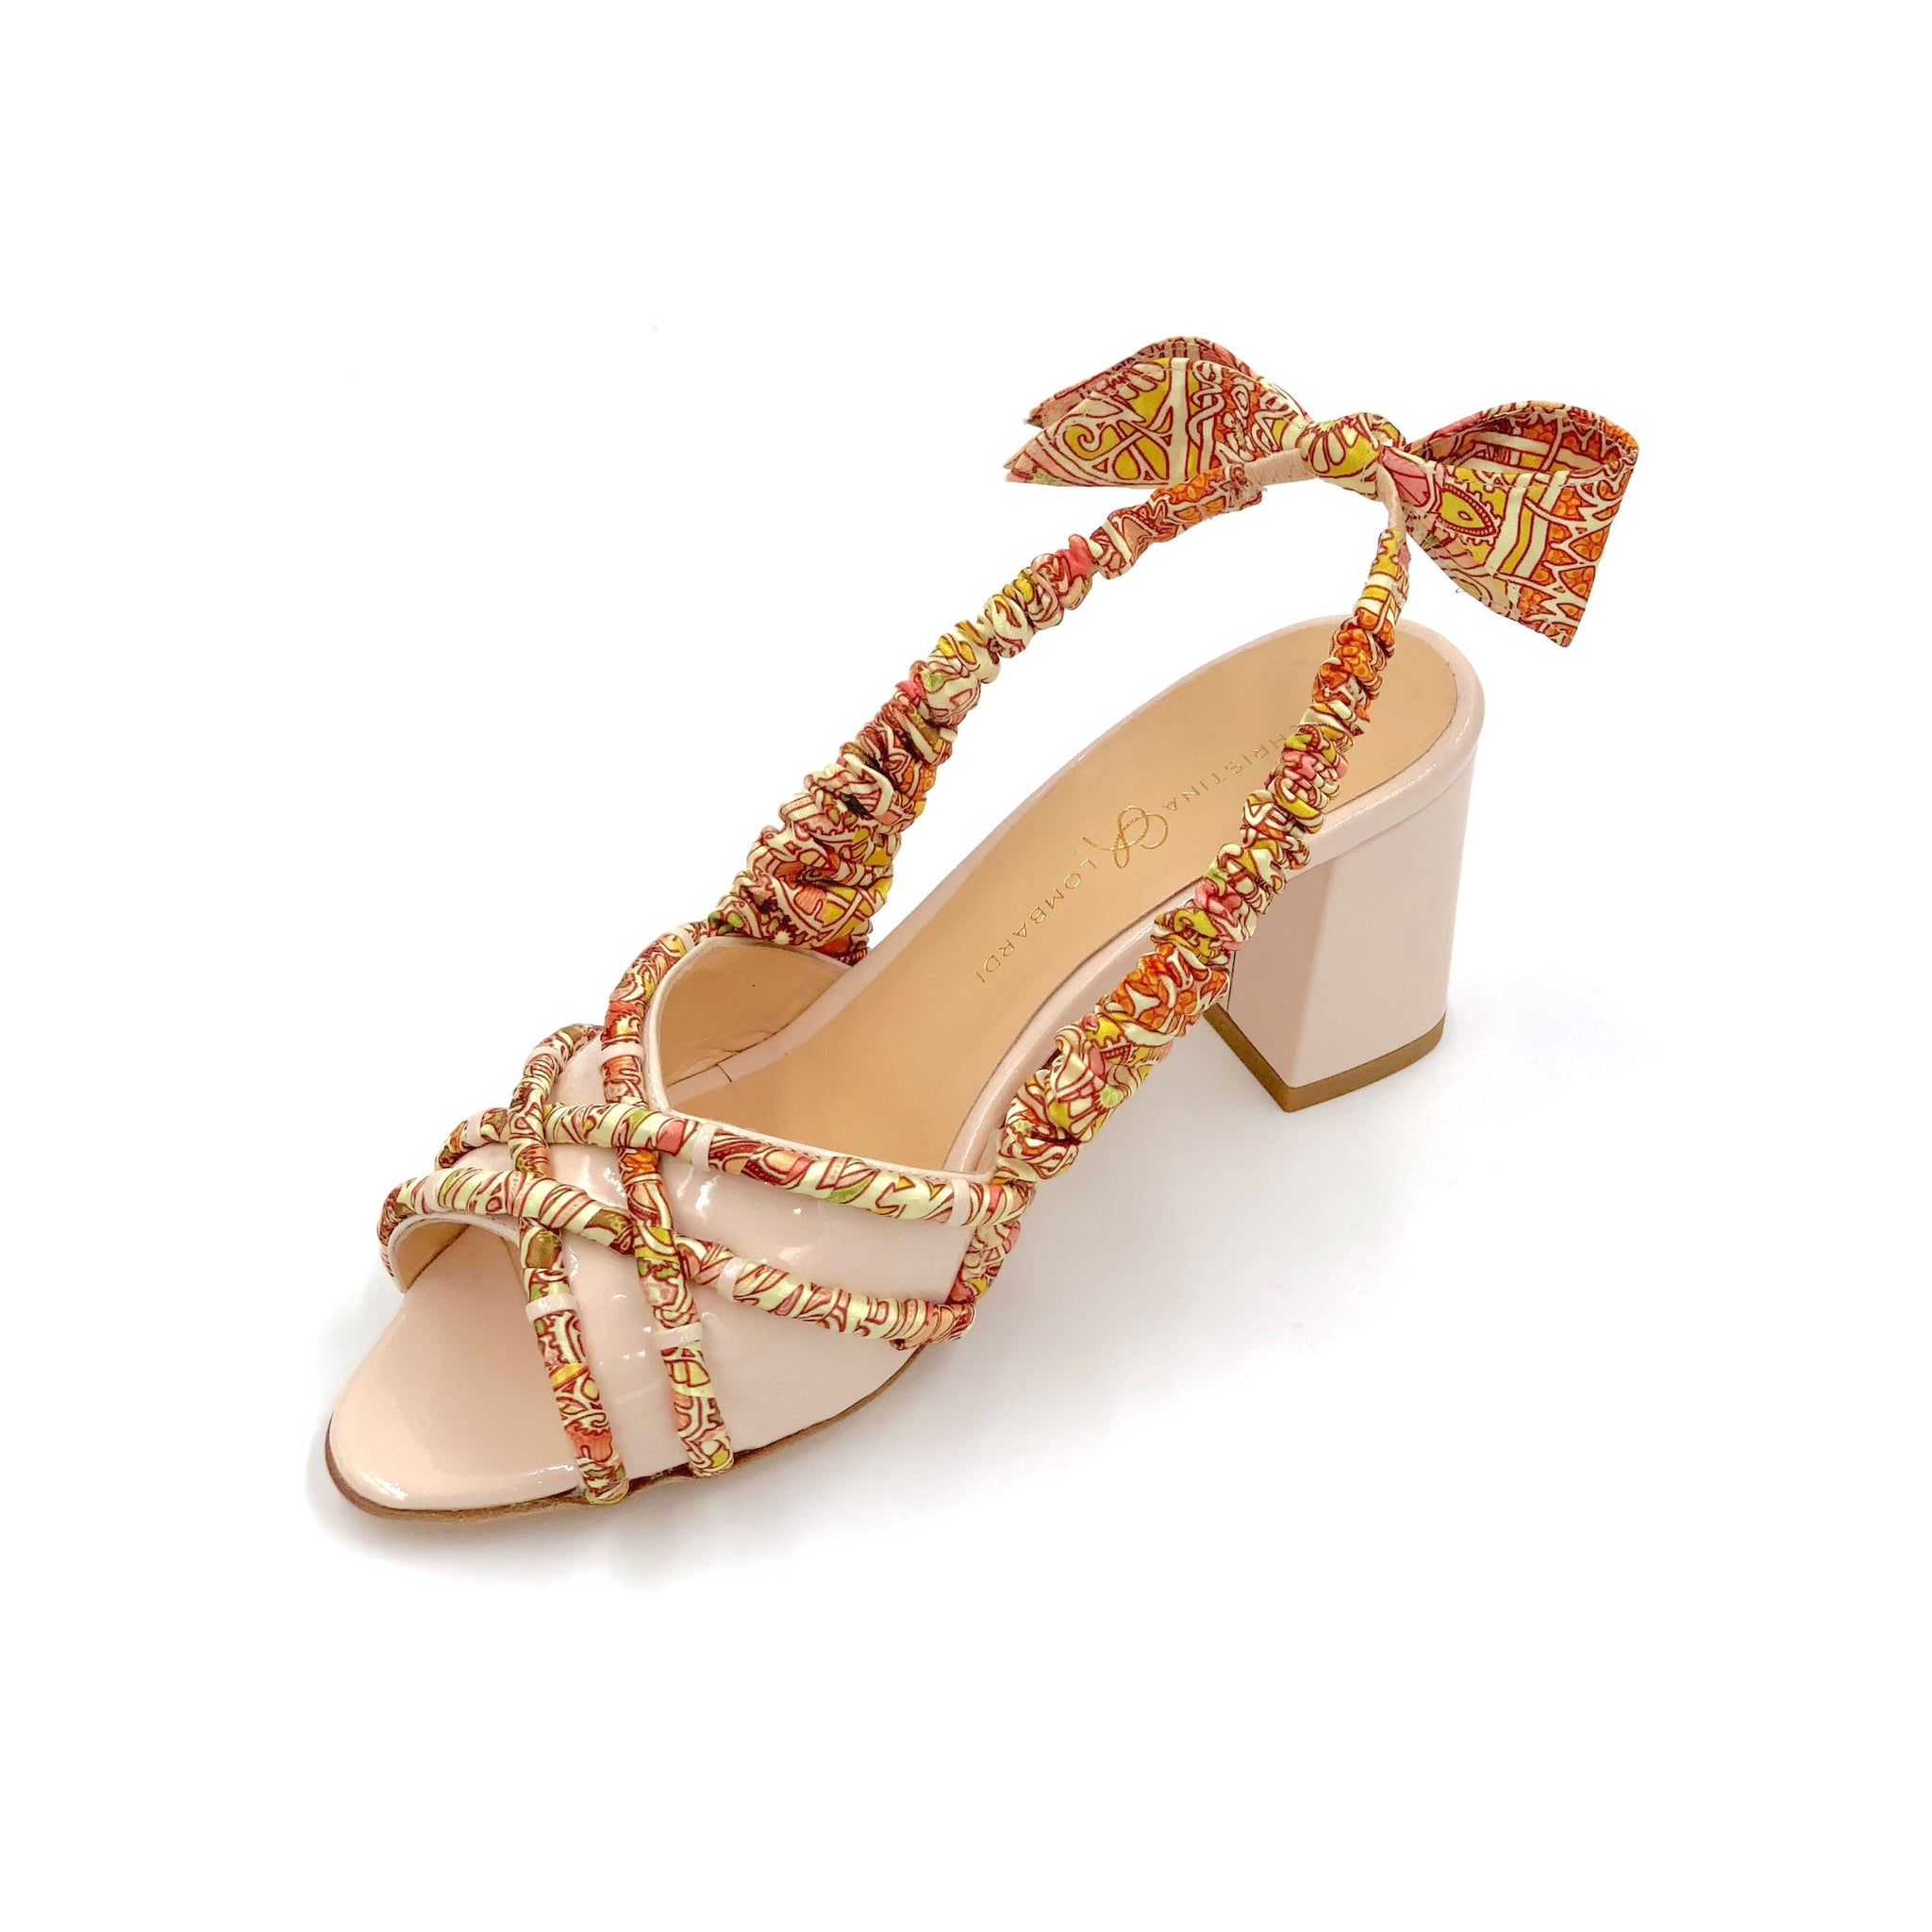 84a06e644 Nude Valentina block heel sling back sandal with pink & orange patterned  silk accents